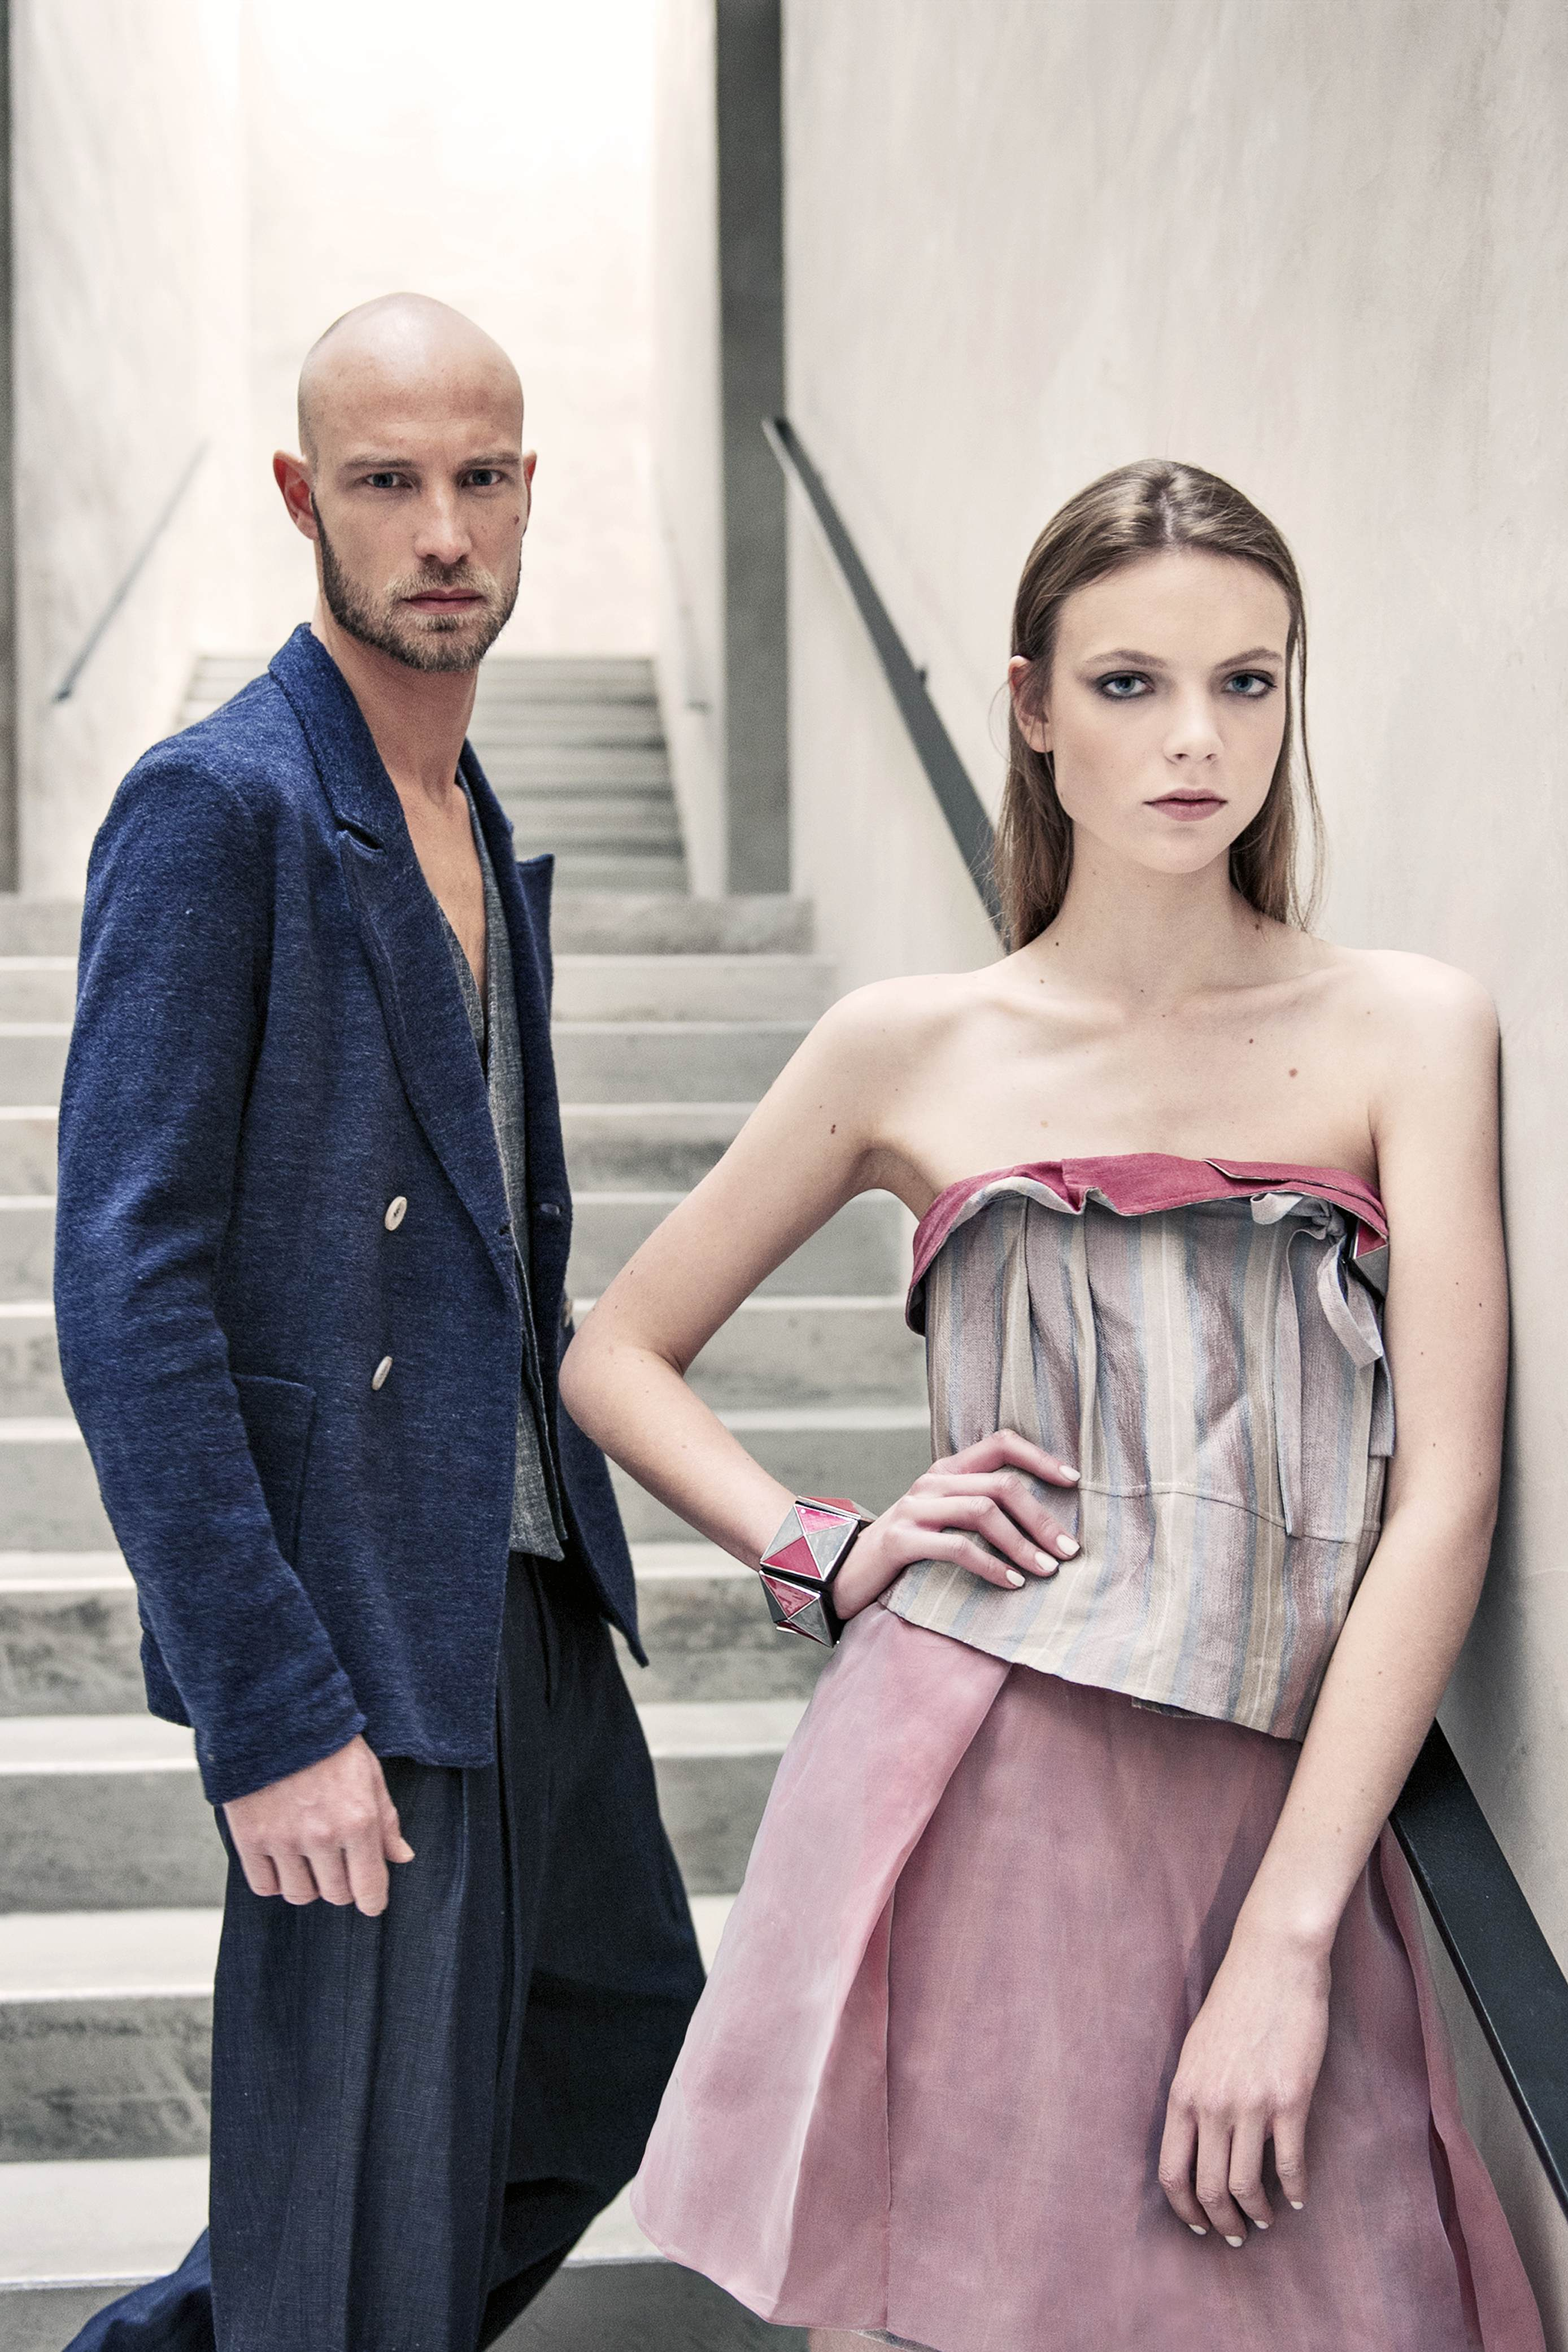 Looks from Armani's spring/summer 2016 collection